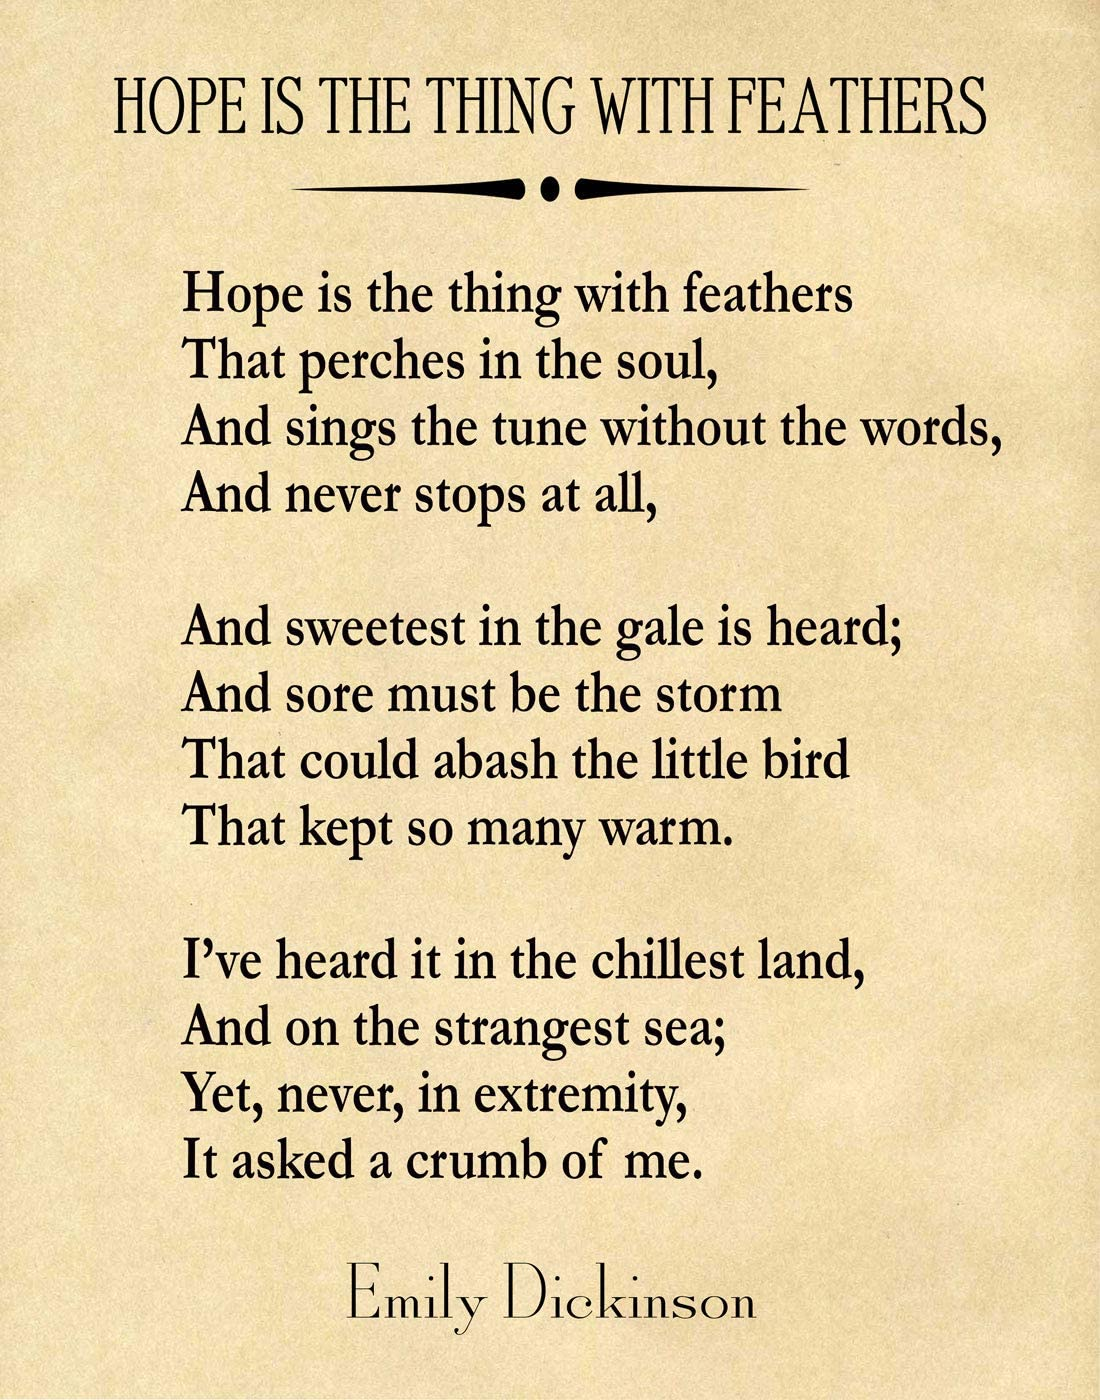 Amazon Com Hope Is The Thing With Feathers By Emily Dickinson Poem Emily Dickinson Quote Poem Poster Poem Prints Poetry Wall Art Poetry Poster 8 X 10 Ivory Posters Prints